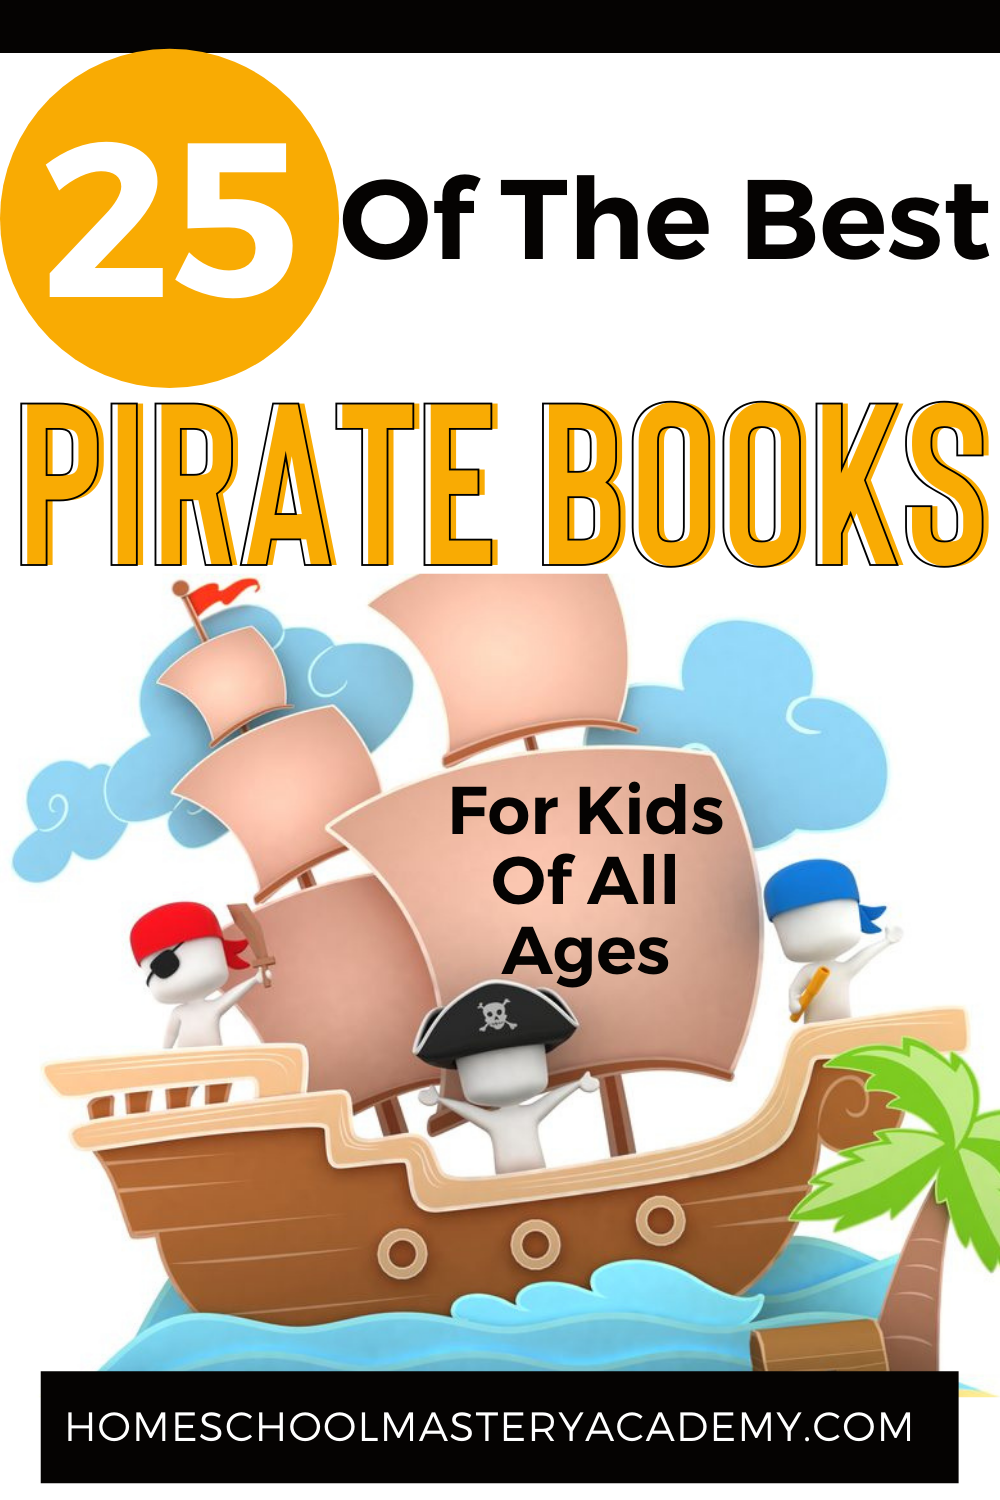 Check out this collection of 25 of the best pirate books for kids to enjoy! With book recommendations for preschool through high school. #talklikeapirateday #piratebooks #booklists #booksforkids